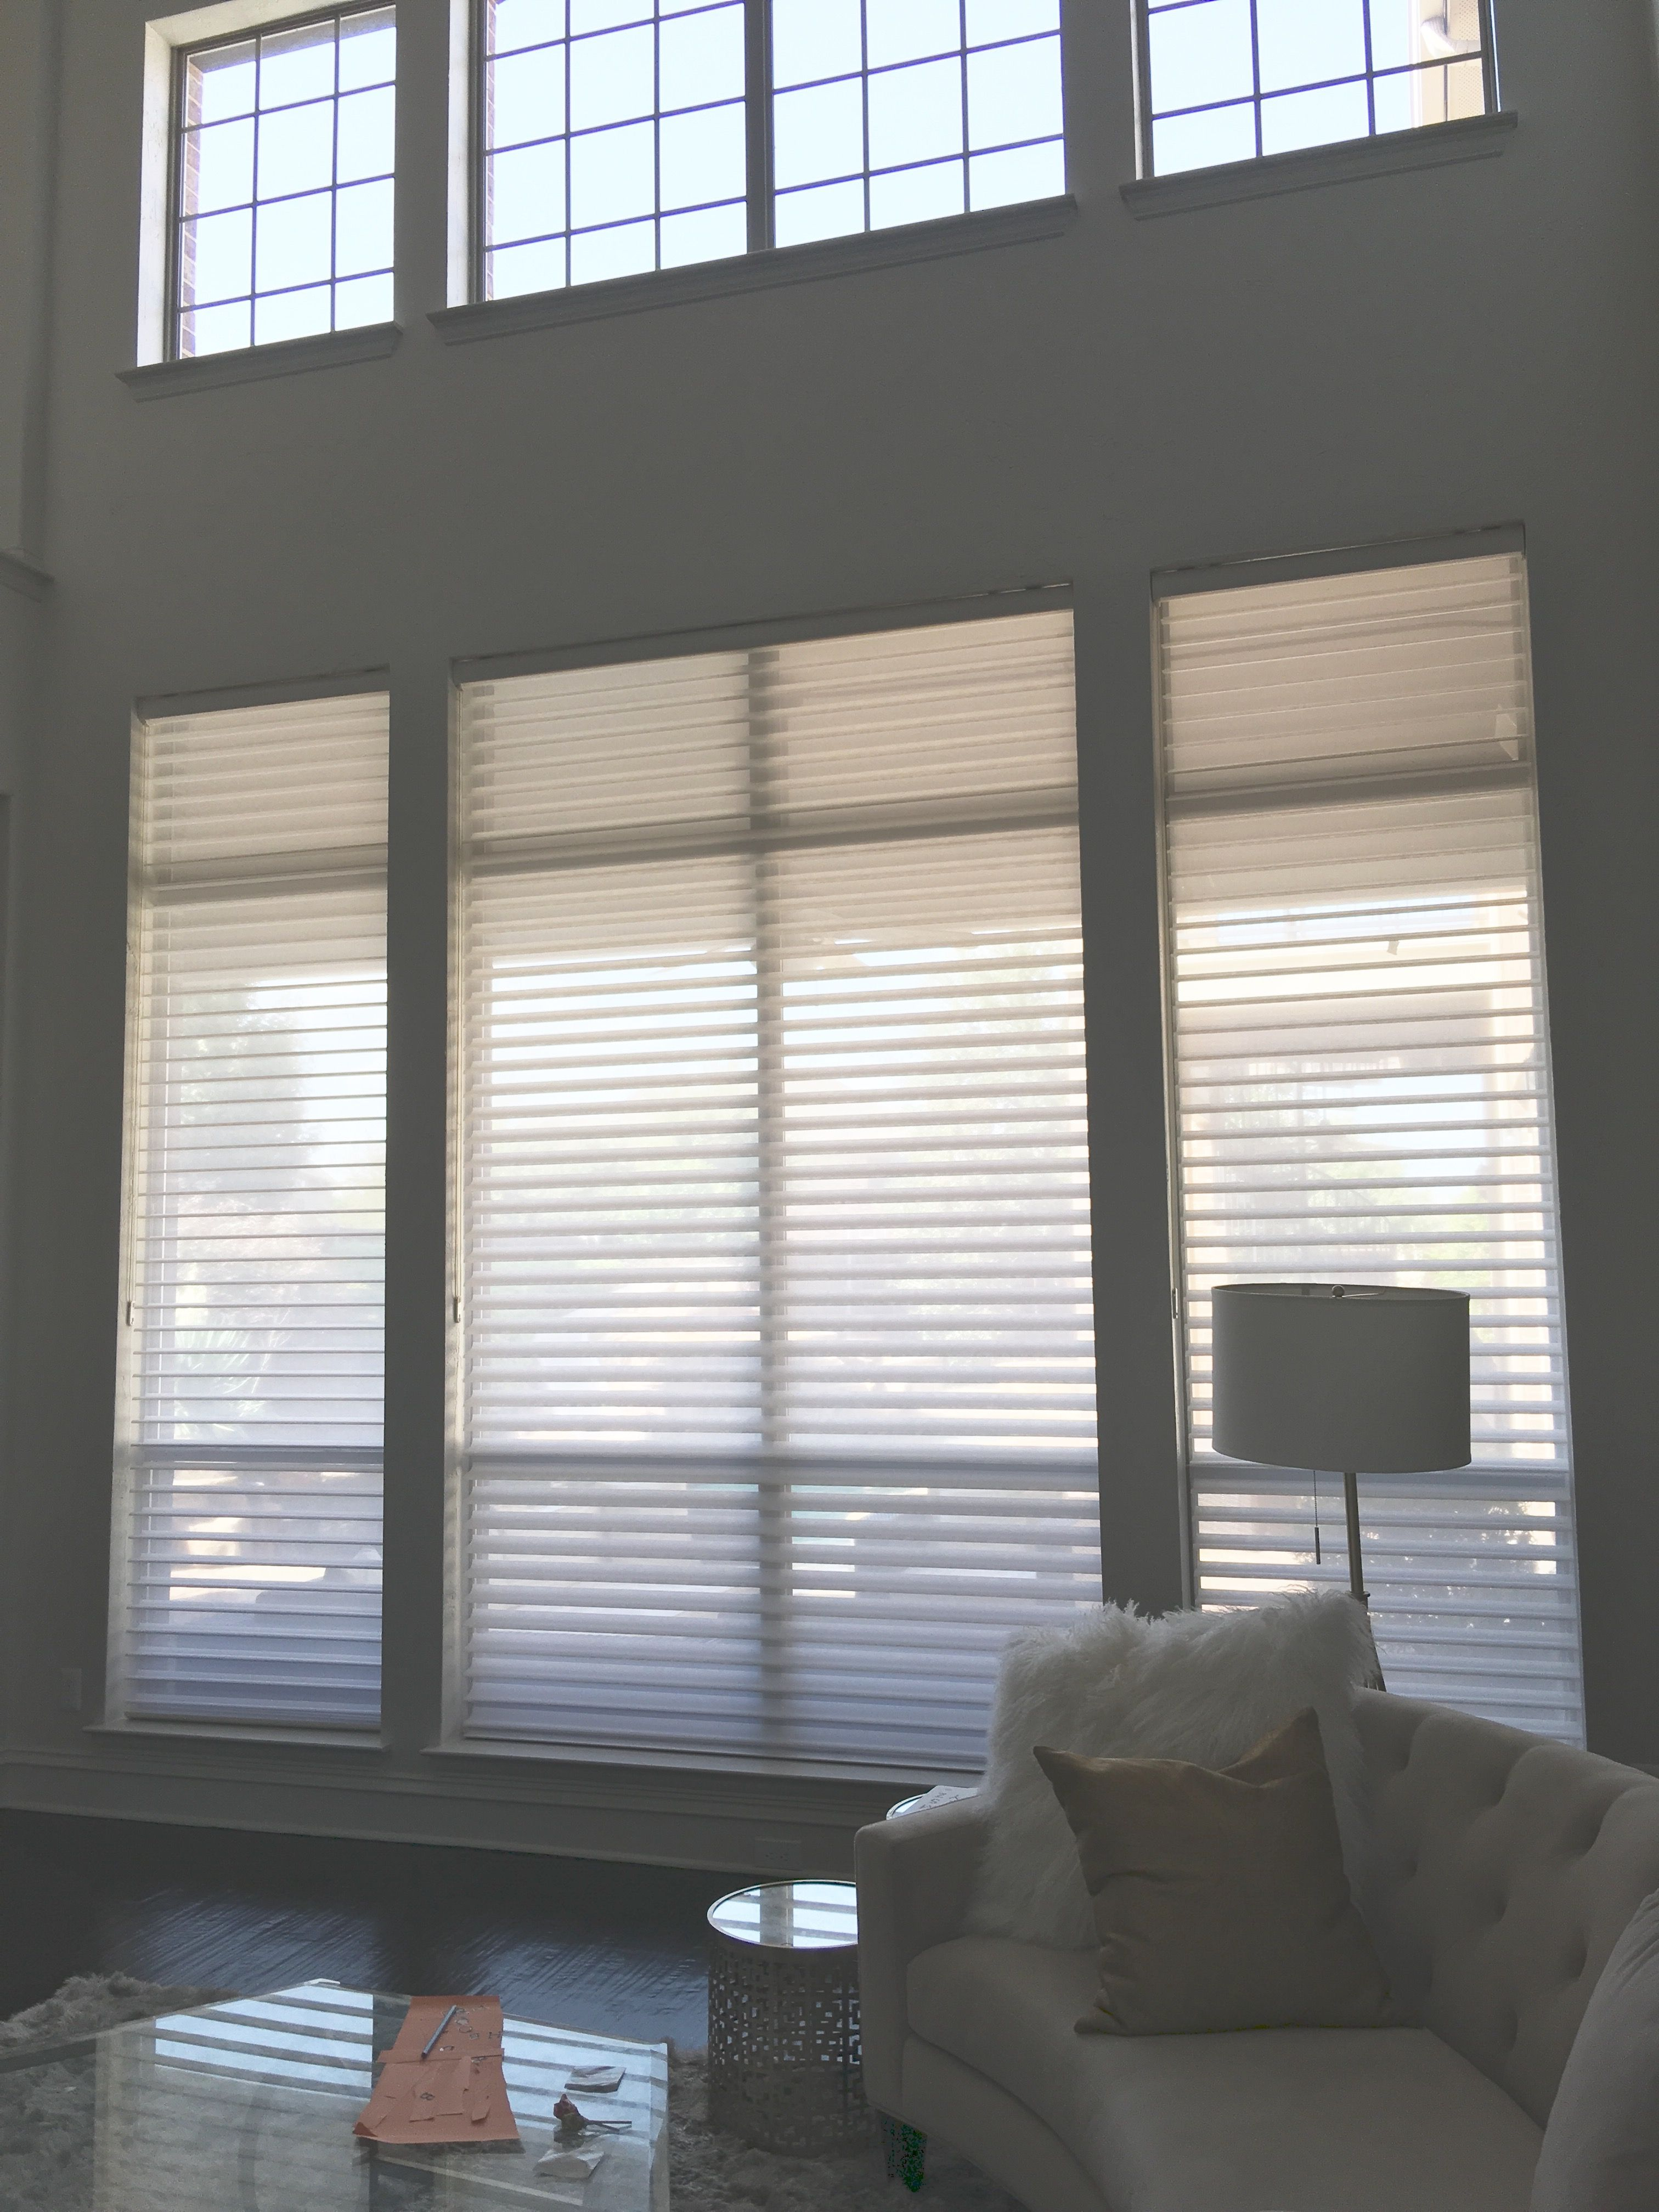 outside sheer shades installations treatment your silhouette windows cover mount photos bedrooms of window blinds